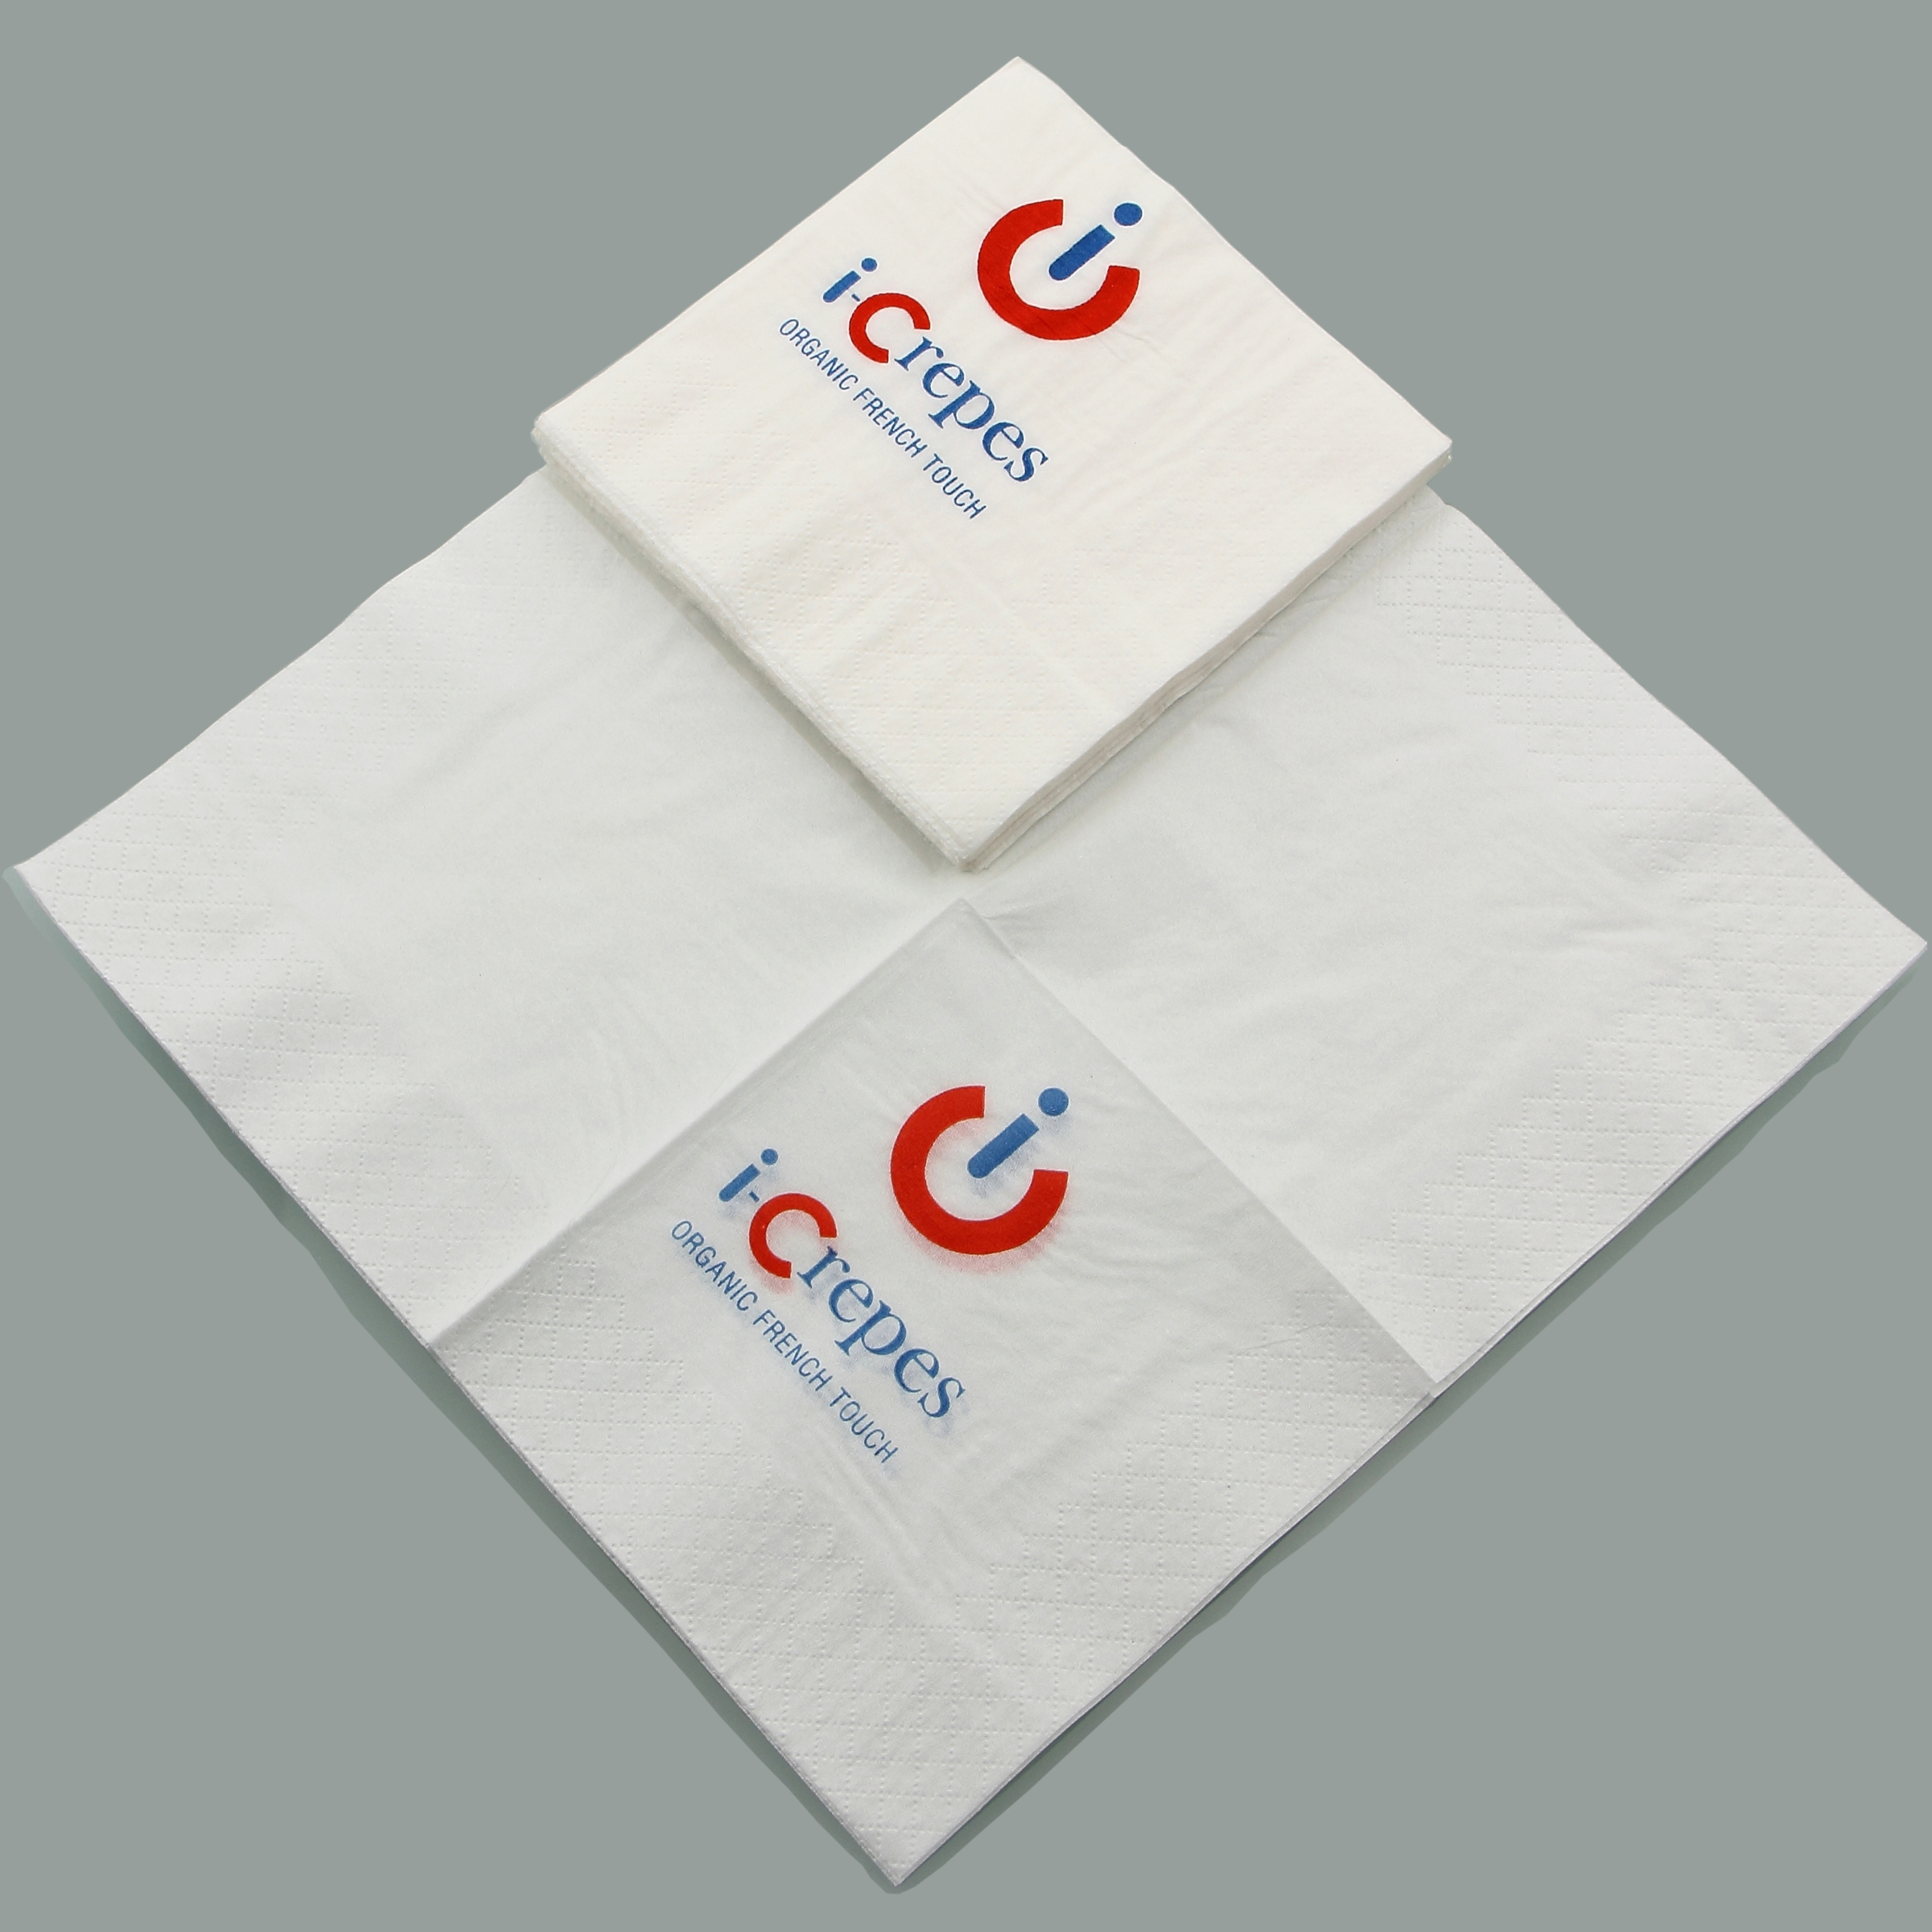 Printed Cocktail Paper Napkin Personalized Paper Cocktail Napkins Buy Custom Printed Cocktail Napkins Wholesale Cocktail Napkins Custom Cocktail Napkins Product On Alibaba Com